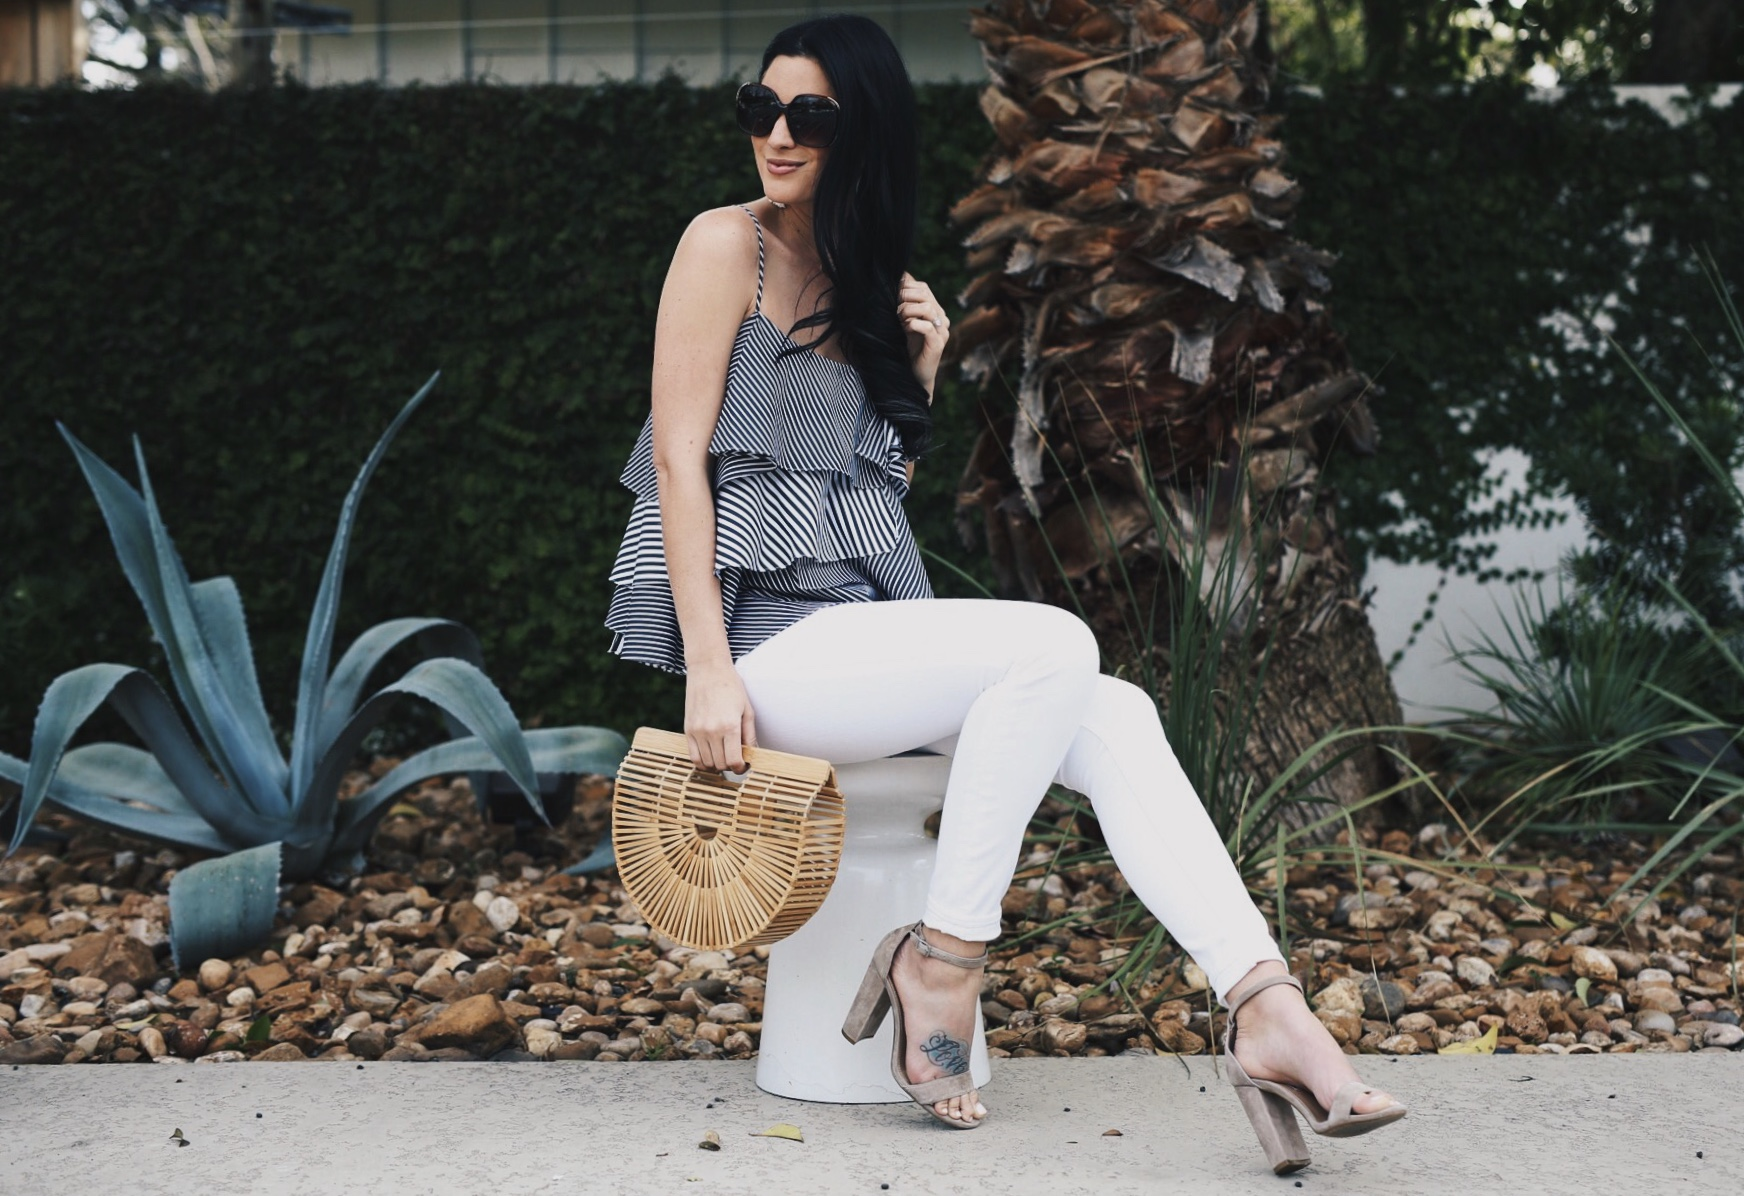 DTKAustin shares details on how to find the best pair of white denim. Madewell white skinny jeans from Nordstrom at an affordable price. - Finding the Perfect Pair of White Denim by popular Austin fashion blogger Dressed to Kill